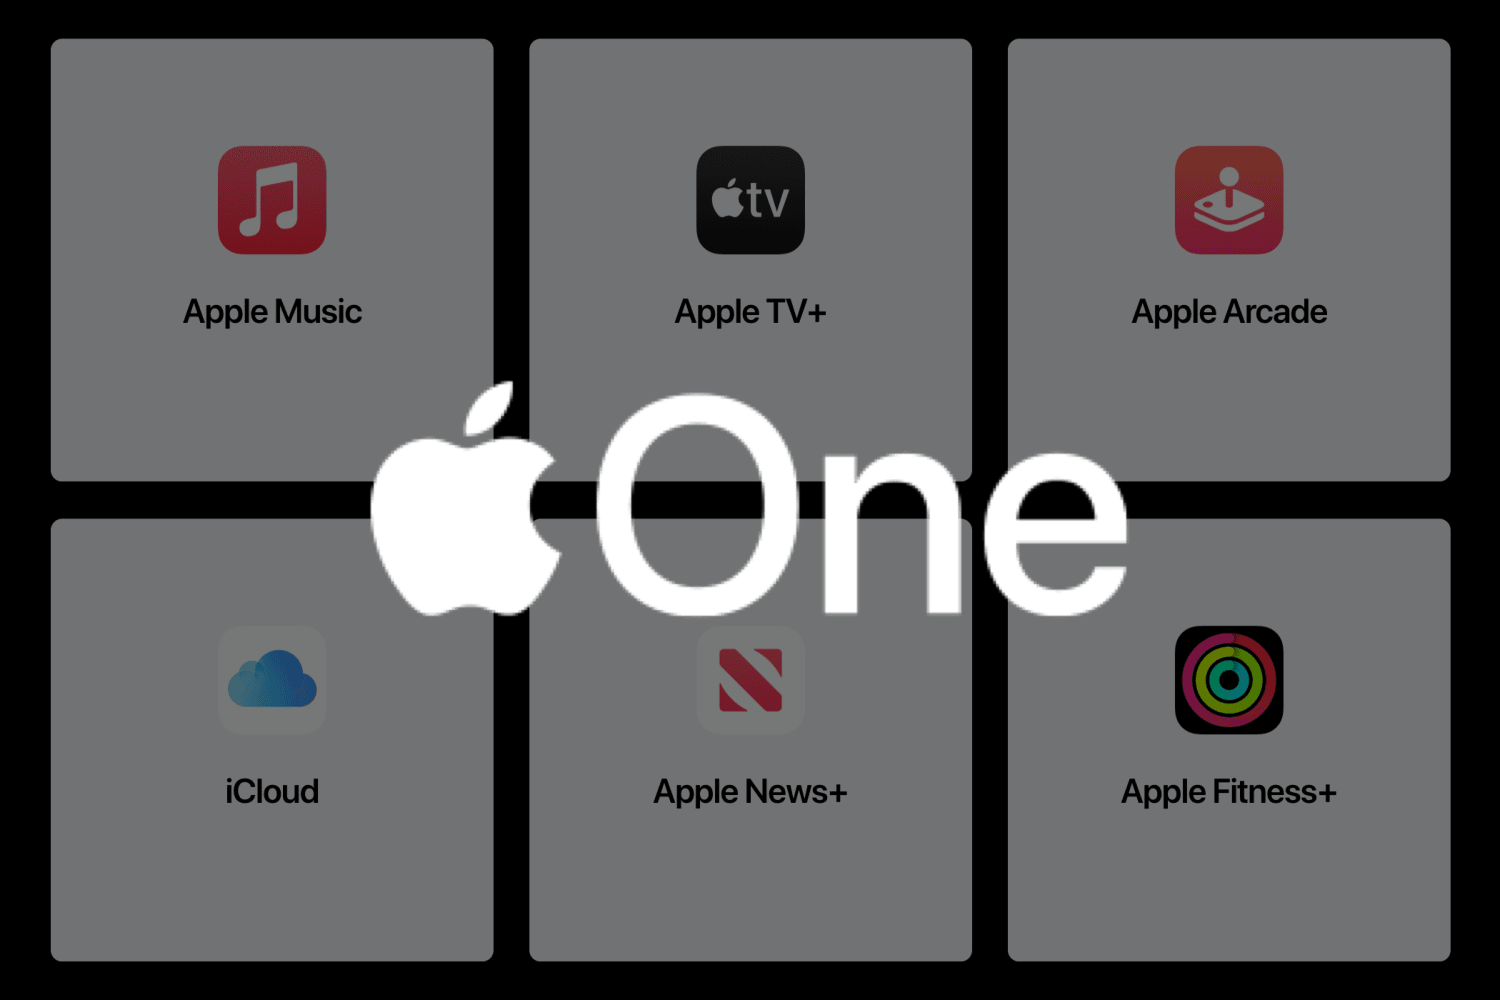 apple-one-s-not-so-smooth-ending-to-30-day-free-trial-20201130-1